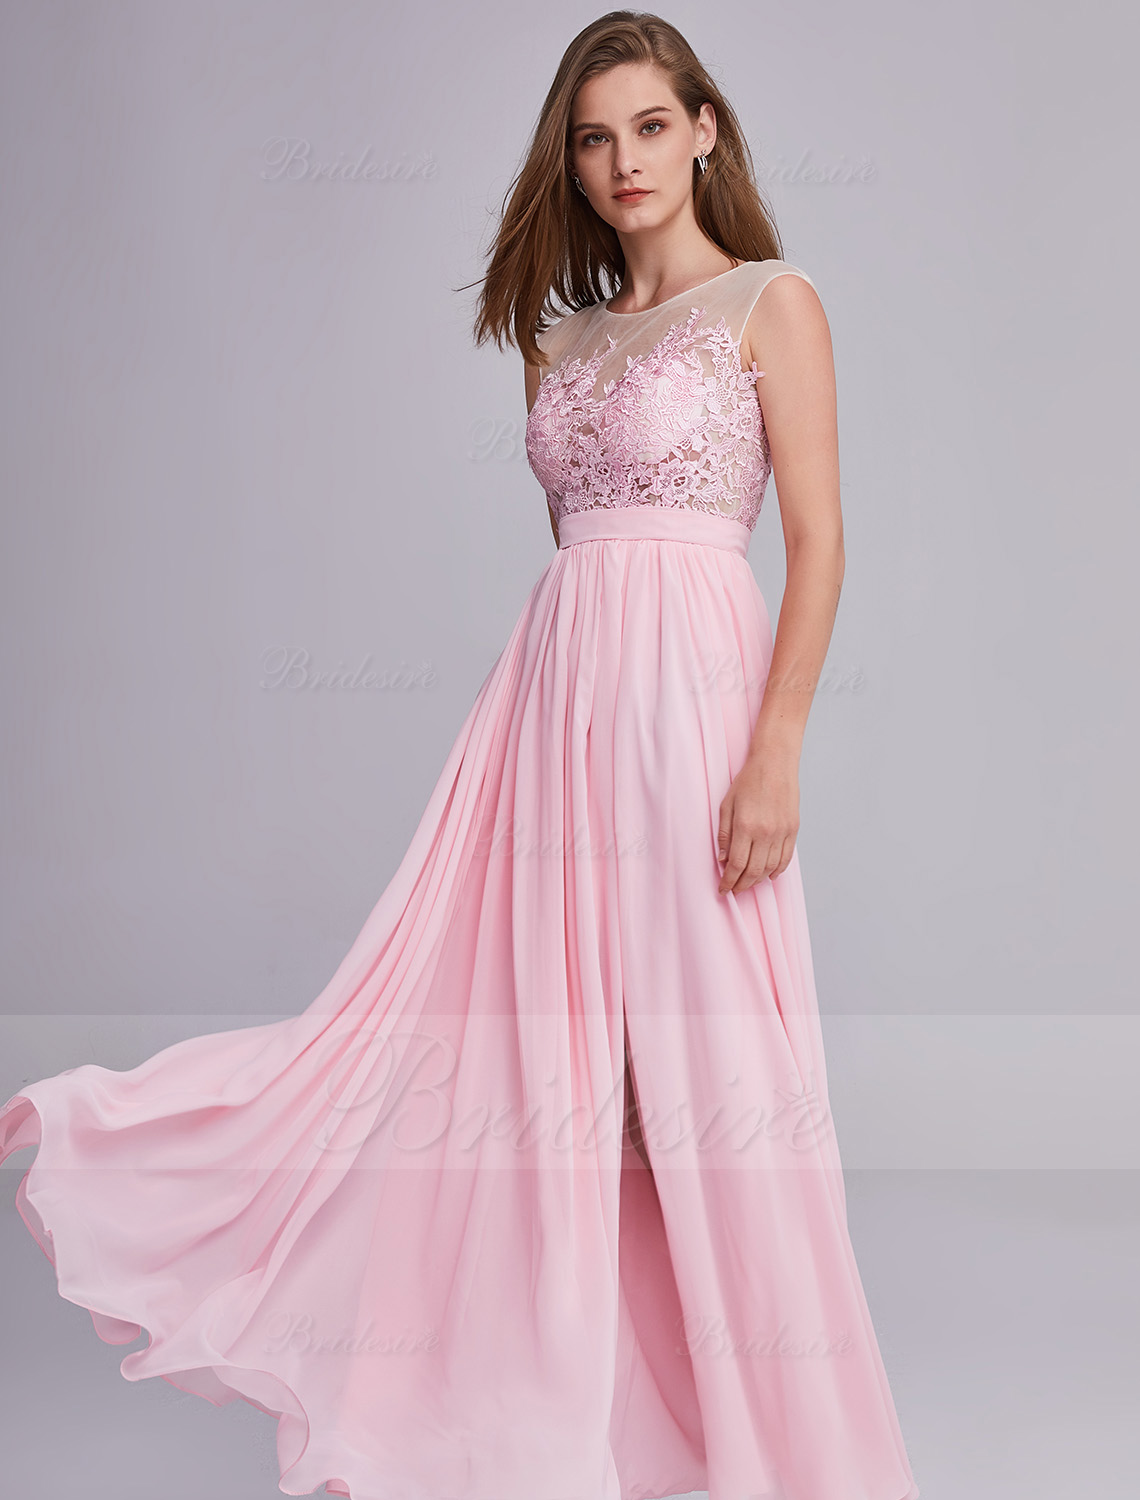 A-line Scoop Sleeveless Chiffon Bridesmaid Dress